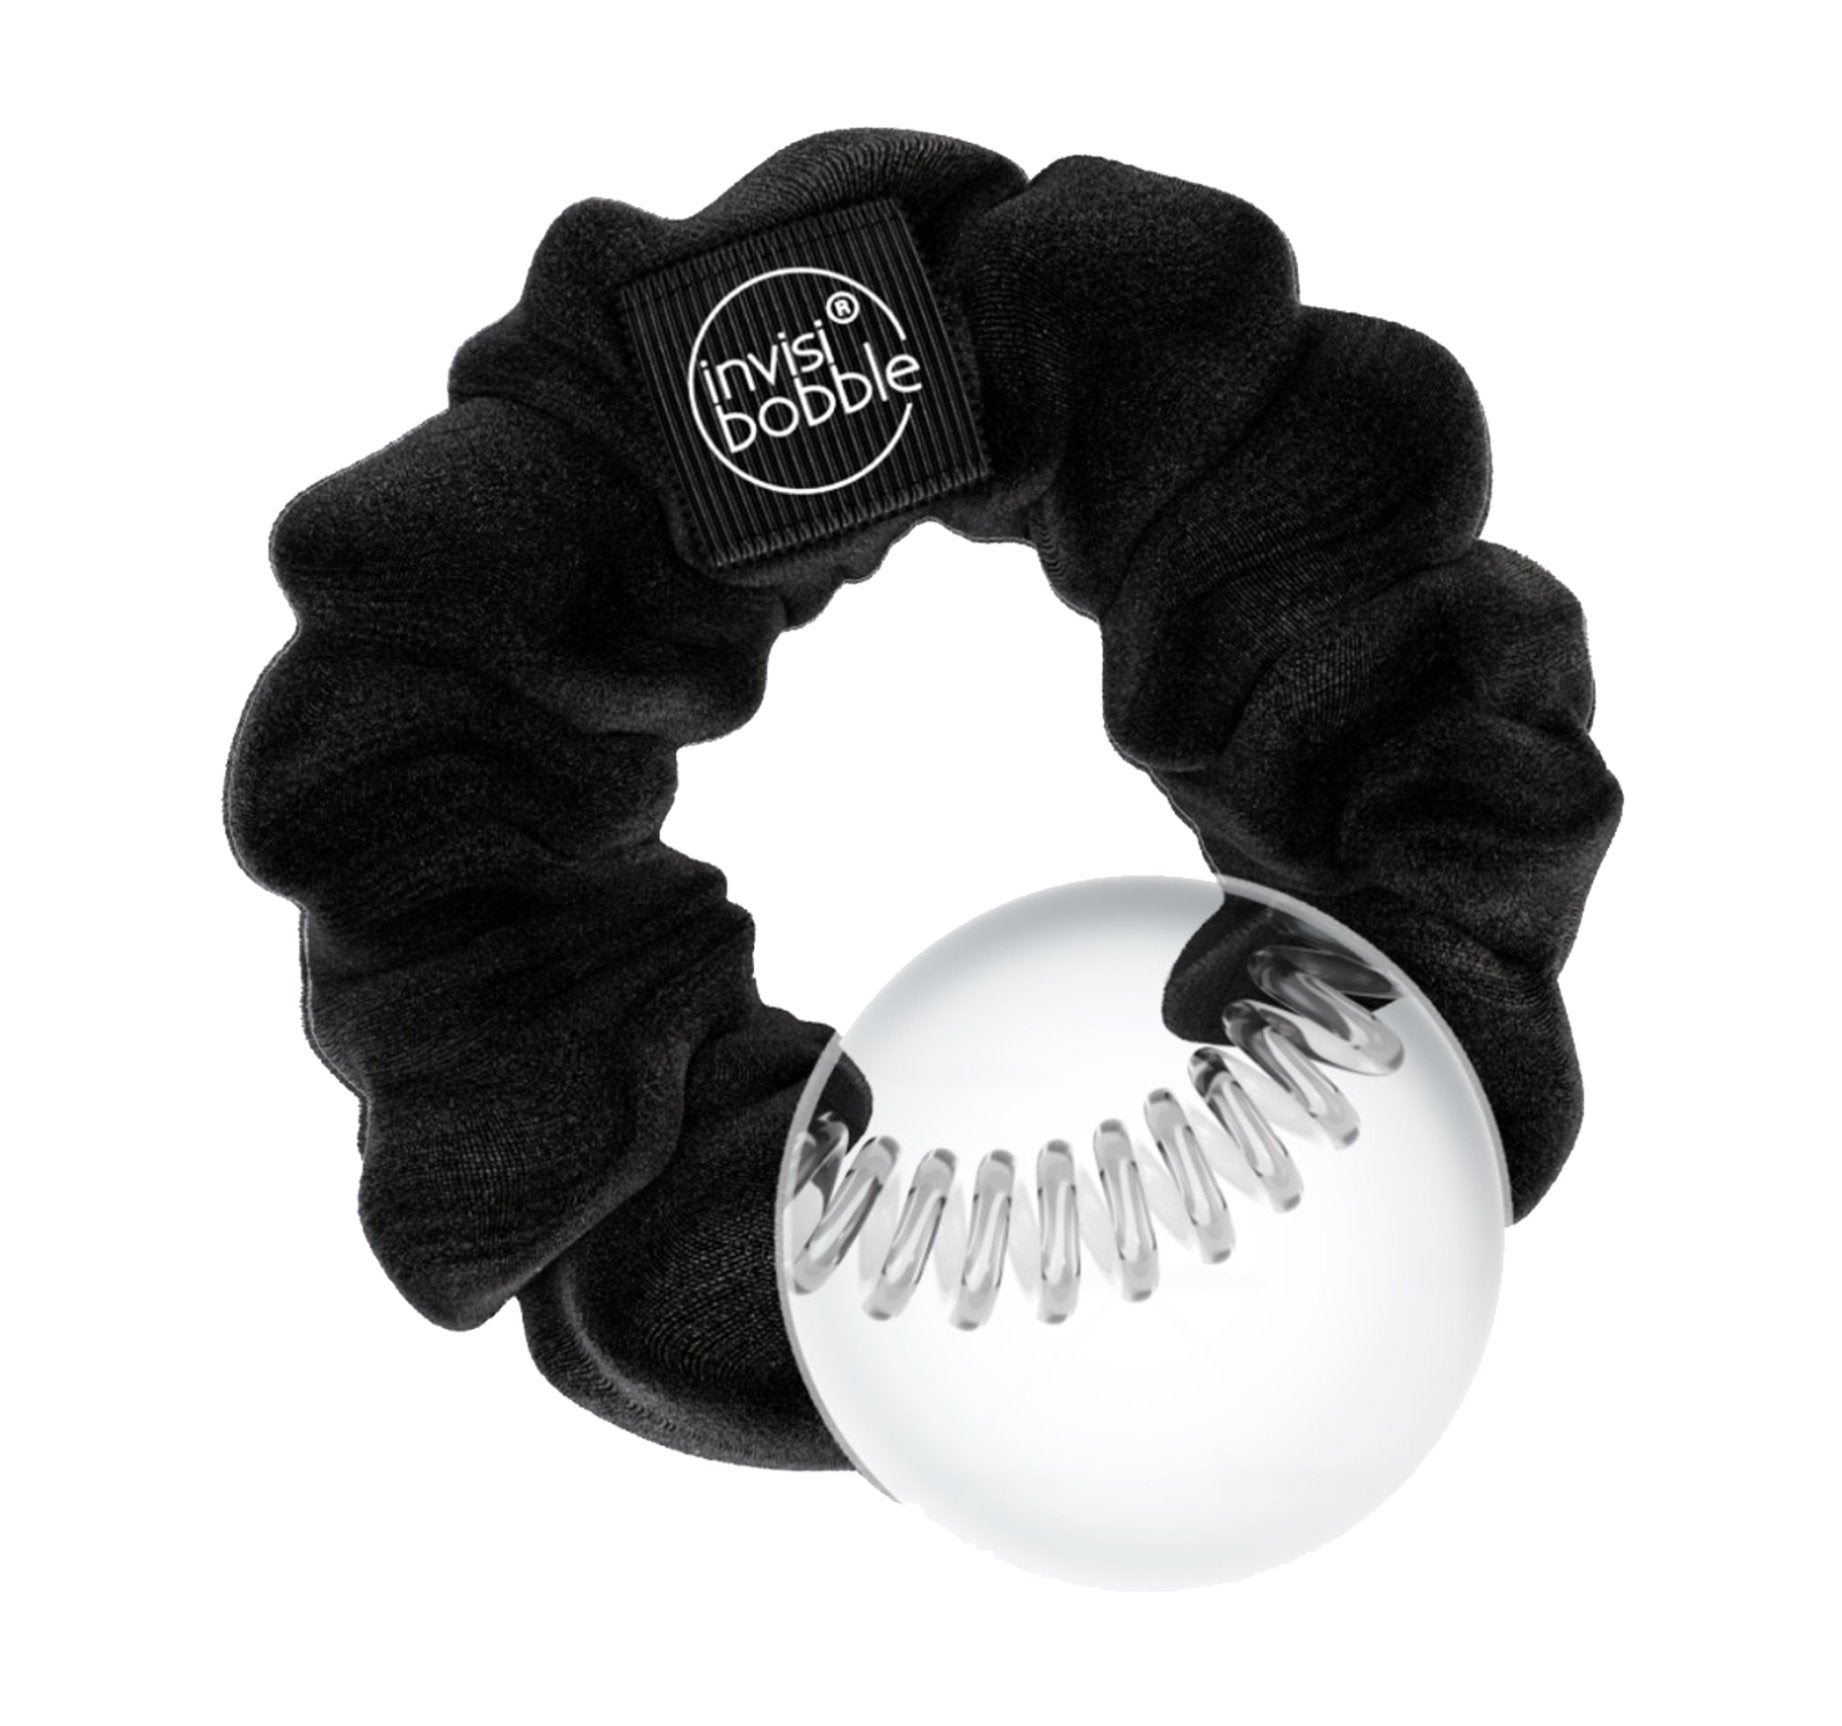 INVISIBOBBLE® SPRUNCHIE - TRUE BLACK, view larger image